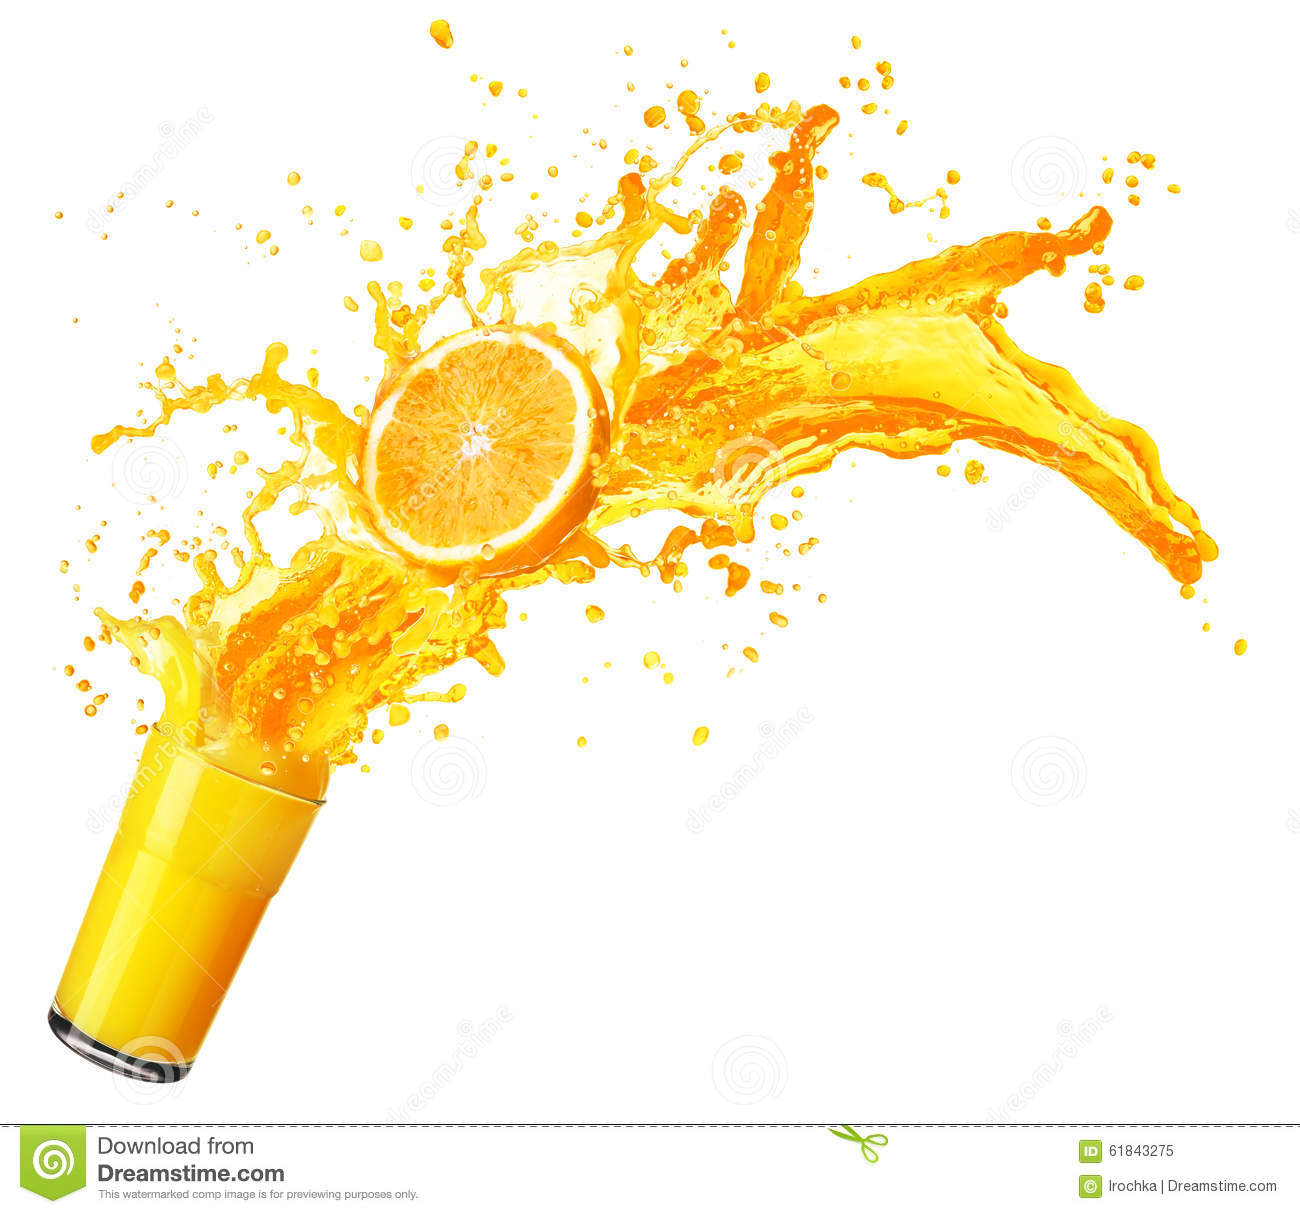 Orange Juice Splashing With Its Fruits Isolated On White Stock Photo - Image: 61843275